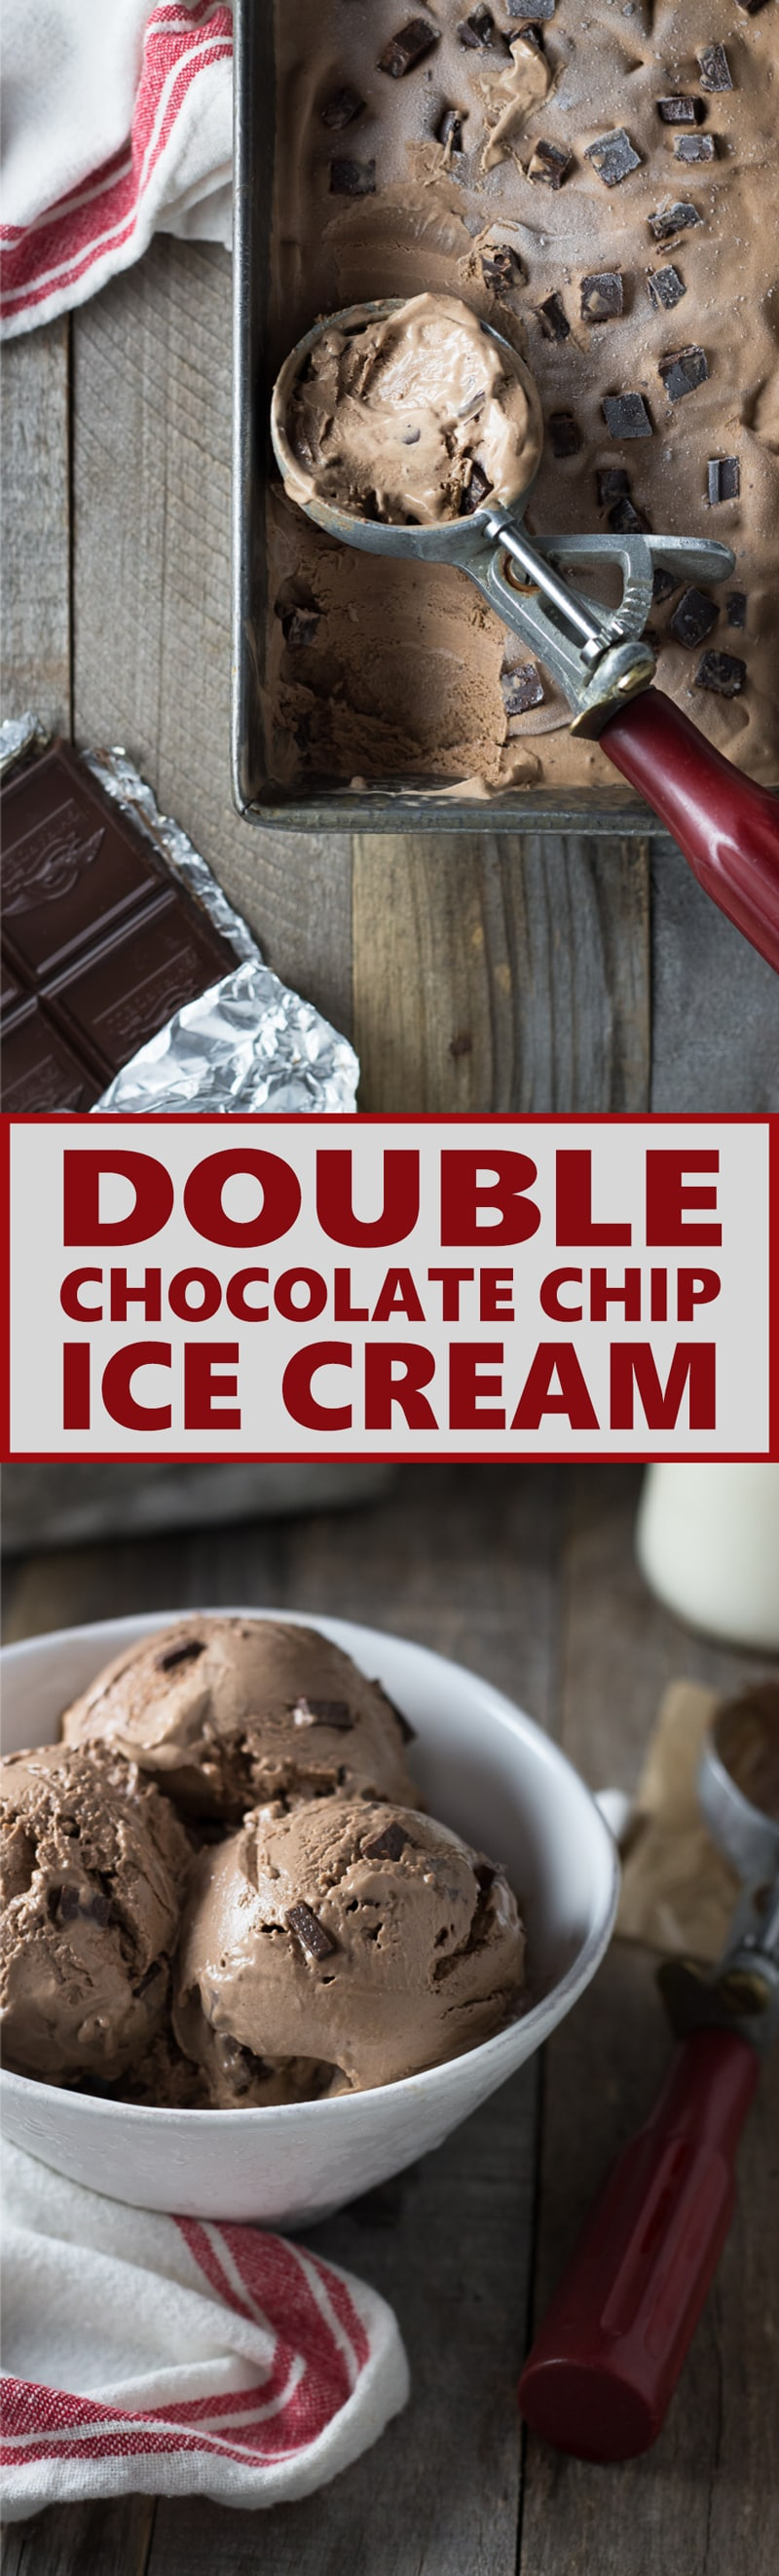 Double Chocolate Chip Ice Cream